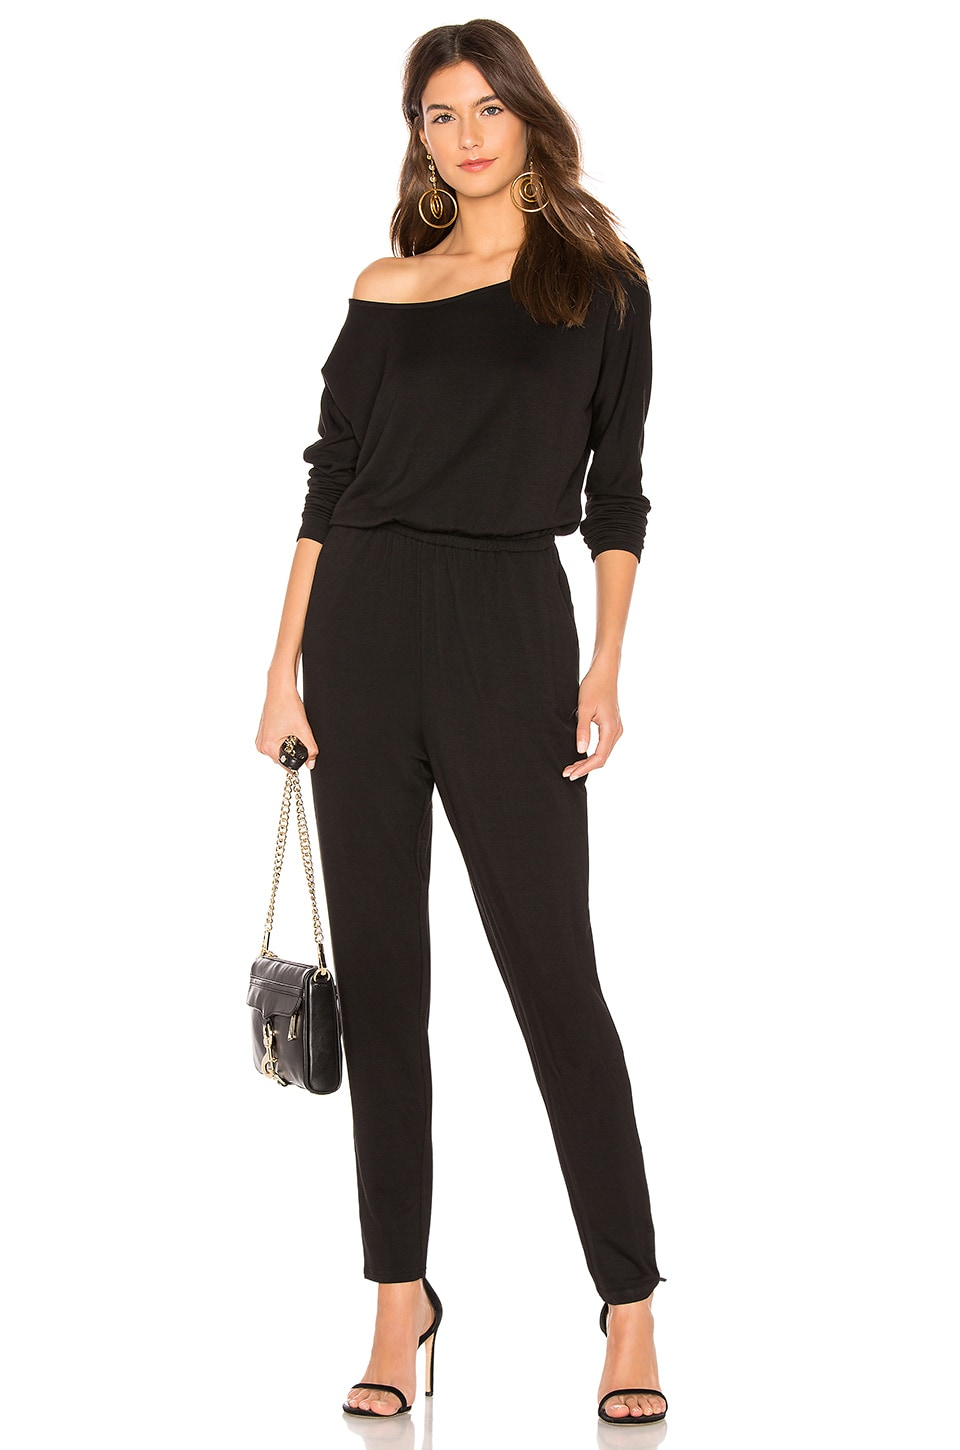 cupcakes and cashmere Carsen Jumpsuit in Black